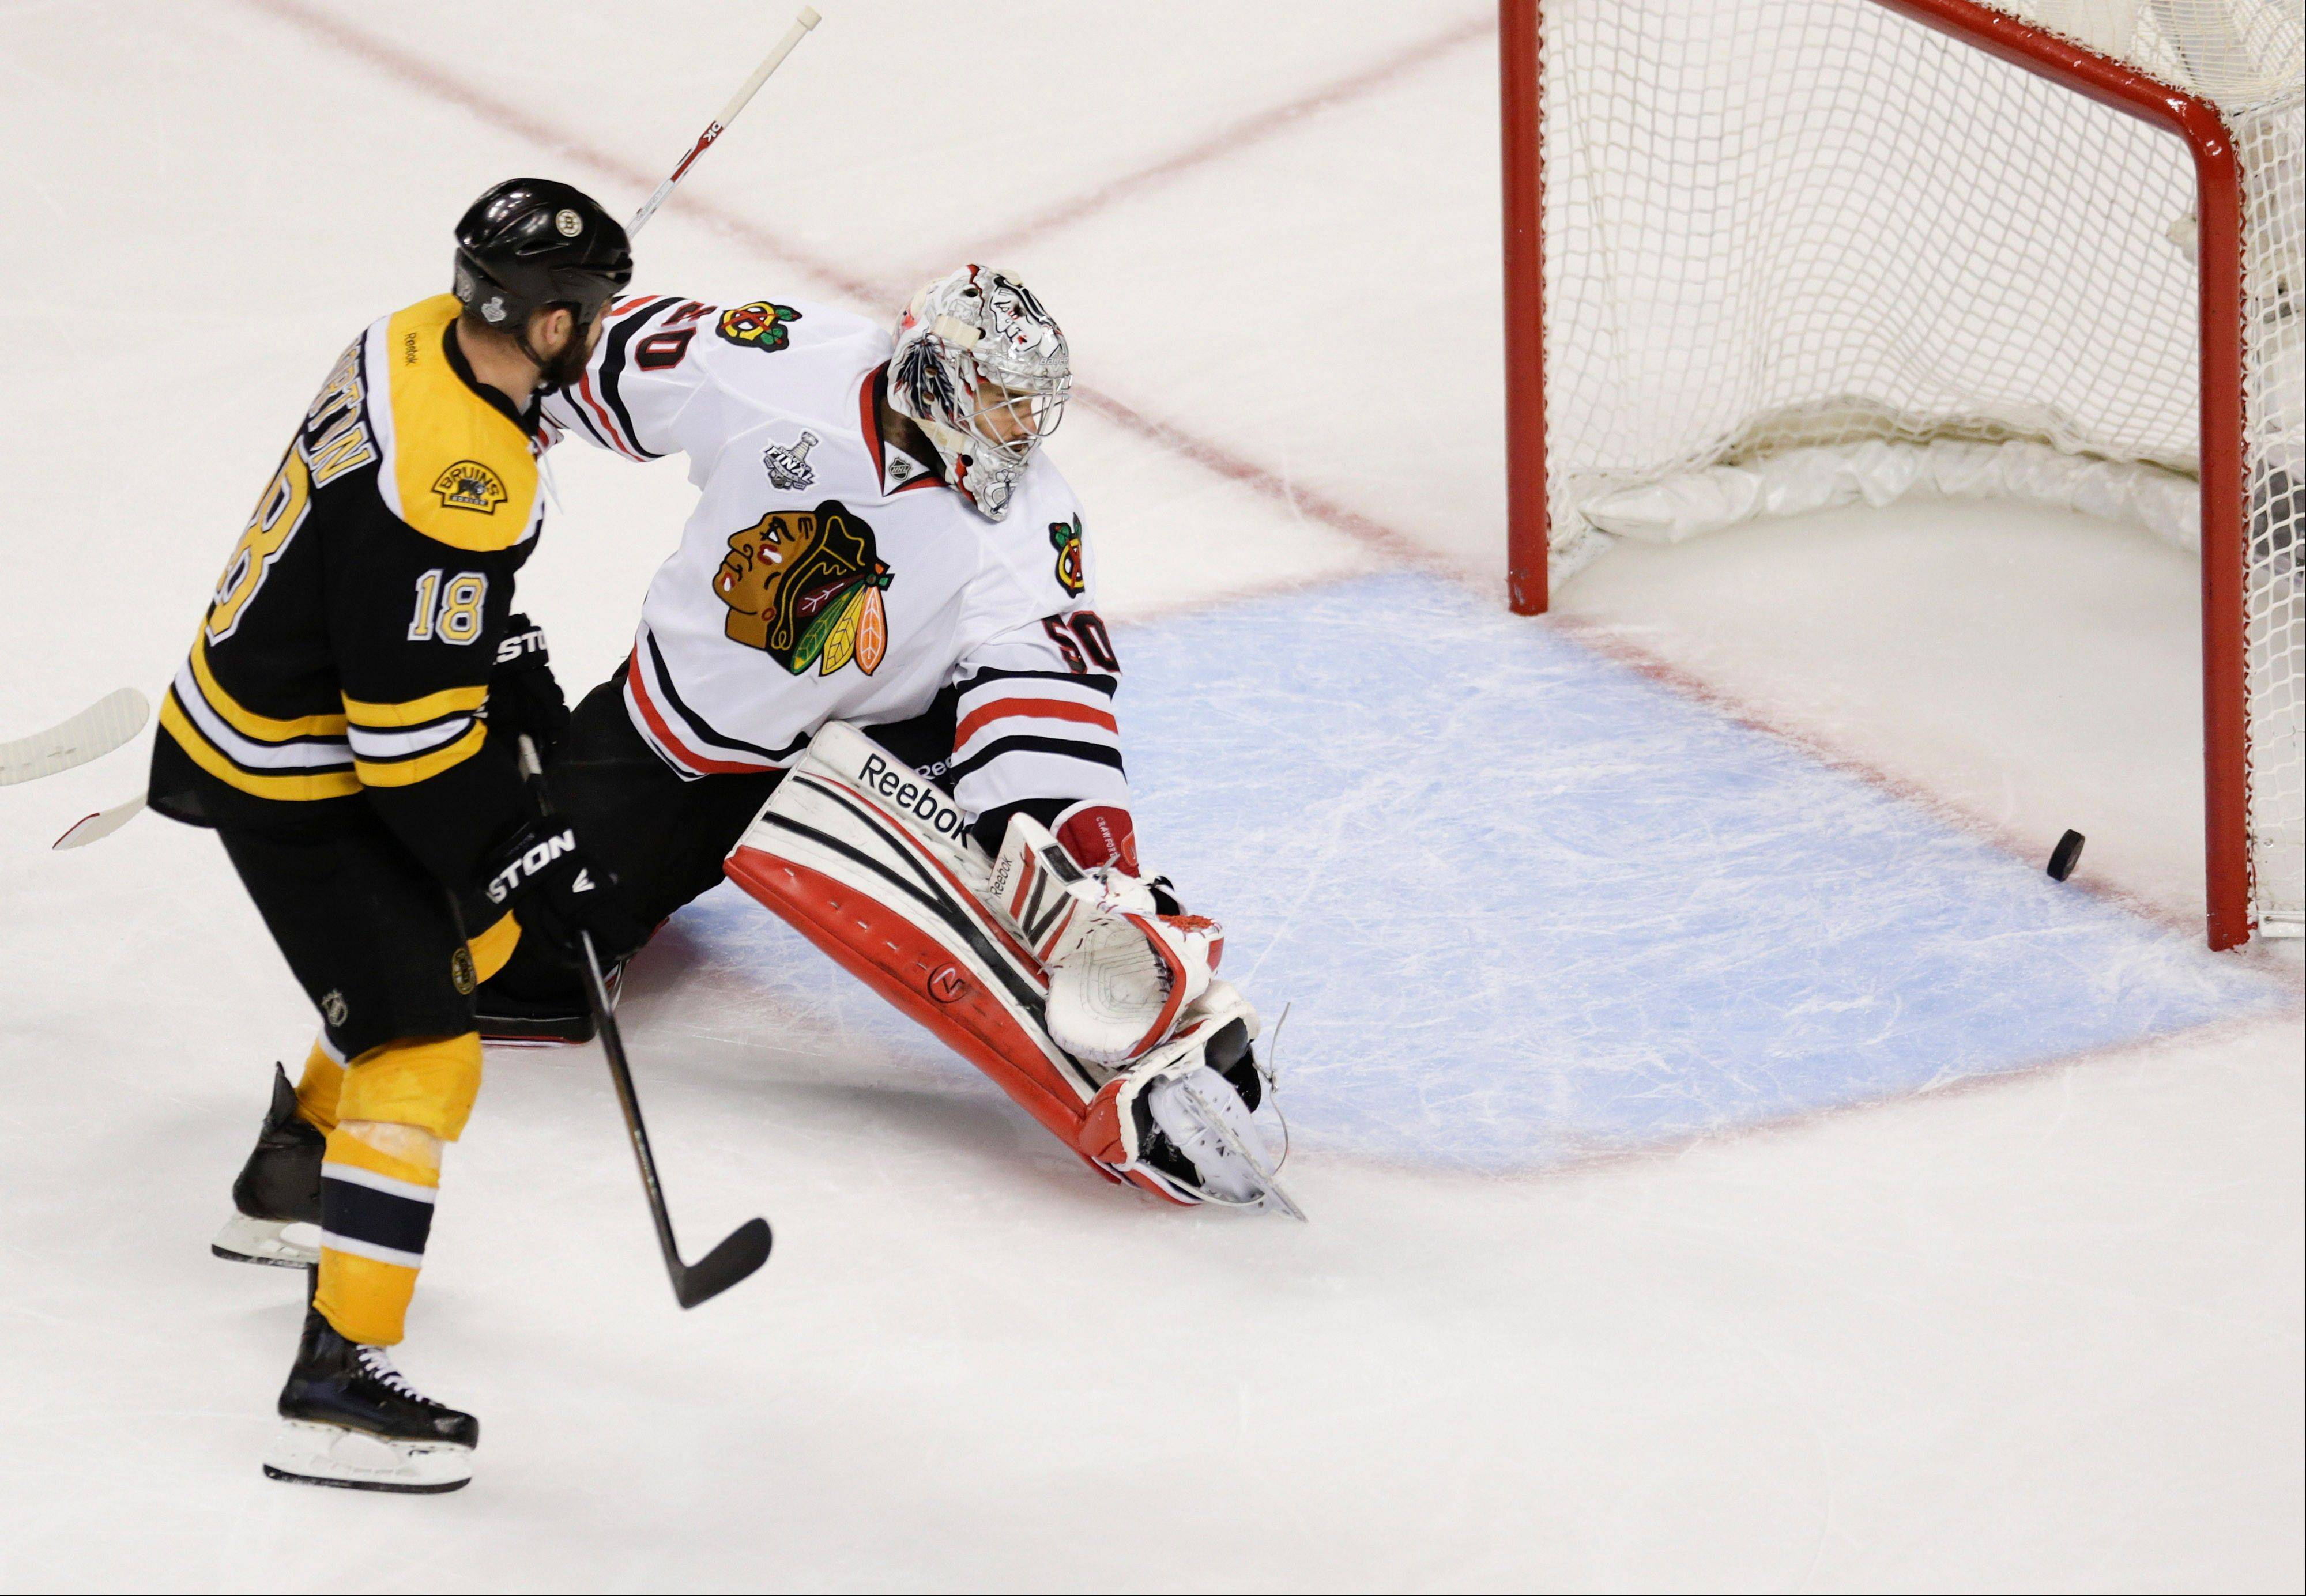 Boston Bruins right wing Nathan Horton (18) watches defenseman Johnny Boychuk's goal against Chicago Blackhawks goalie Corey Crawford (50) during the third period in Game 4 of the NHL hockey Stanley Cup Finals.